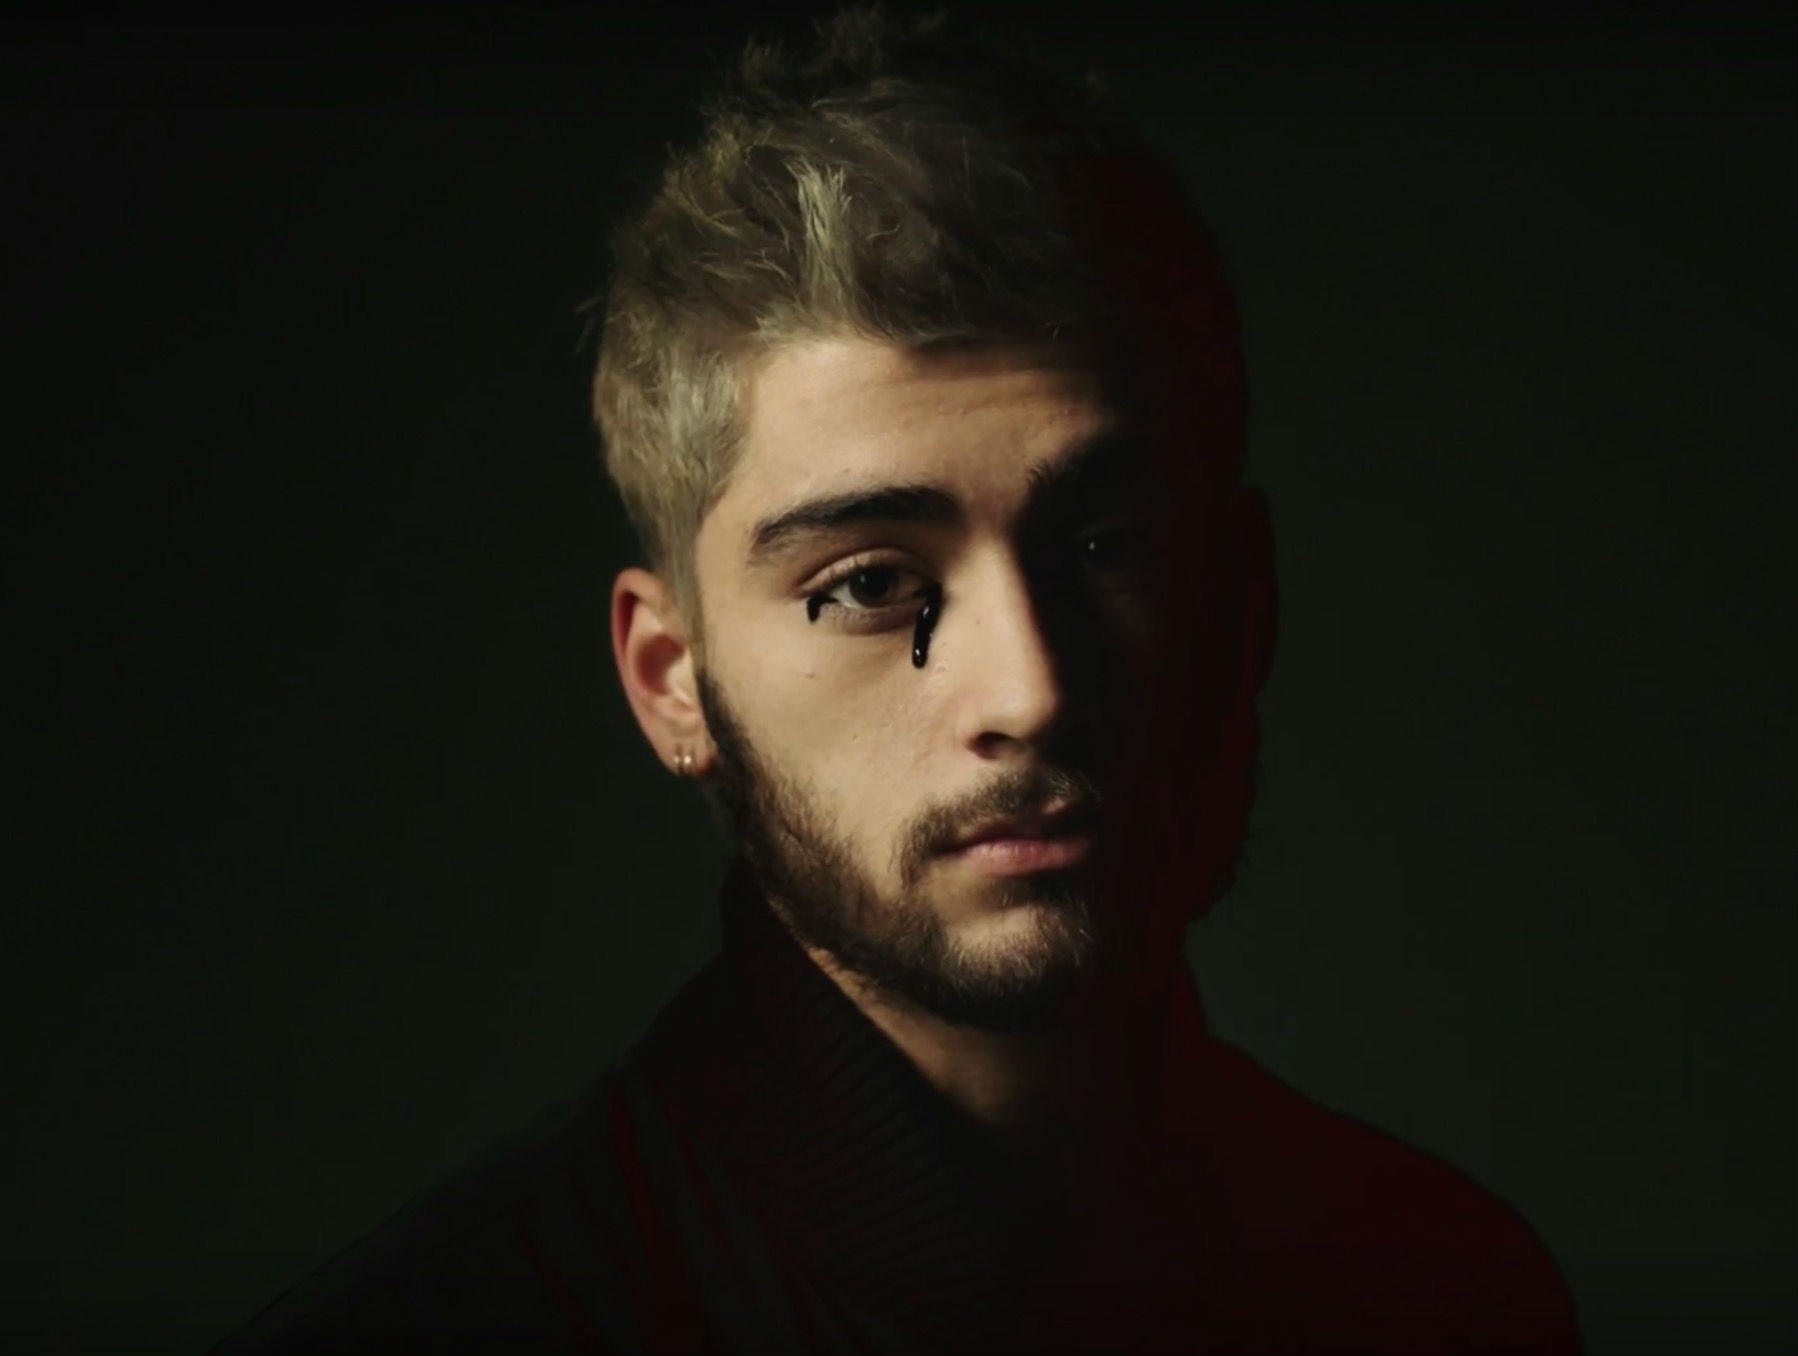 Zayn Malik Pillowtalk video: Ex-One Direction singer